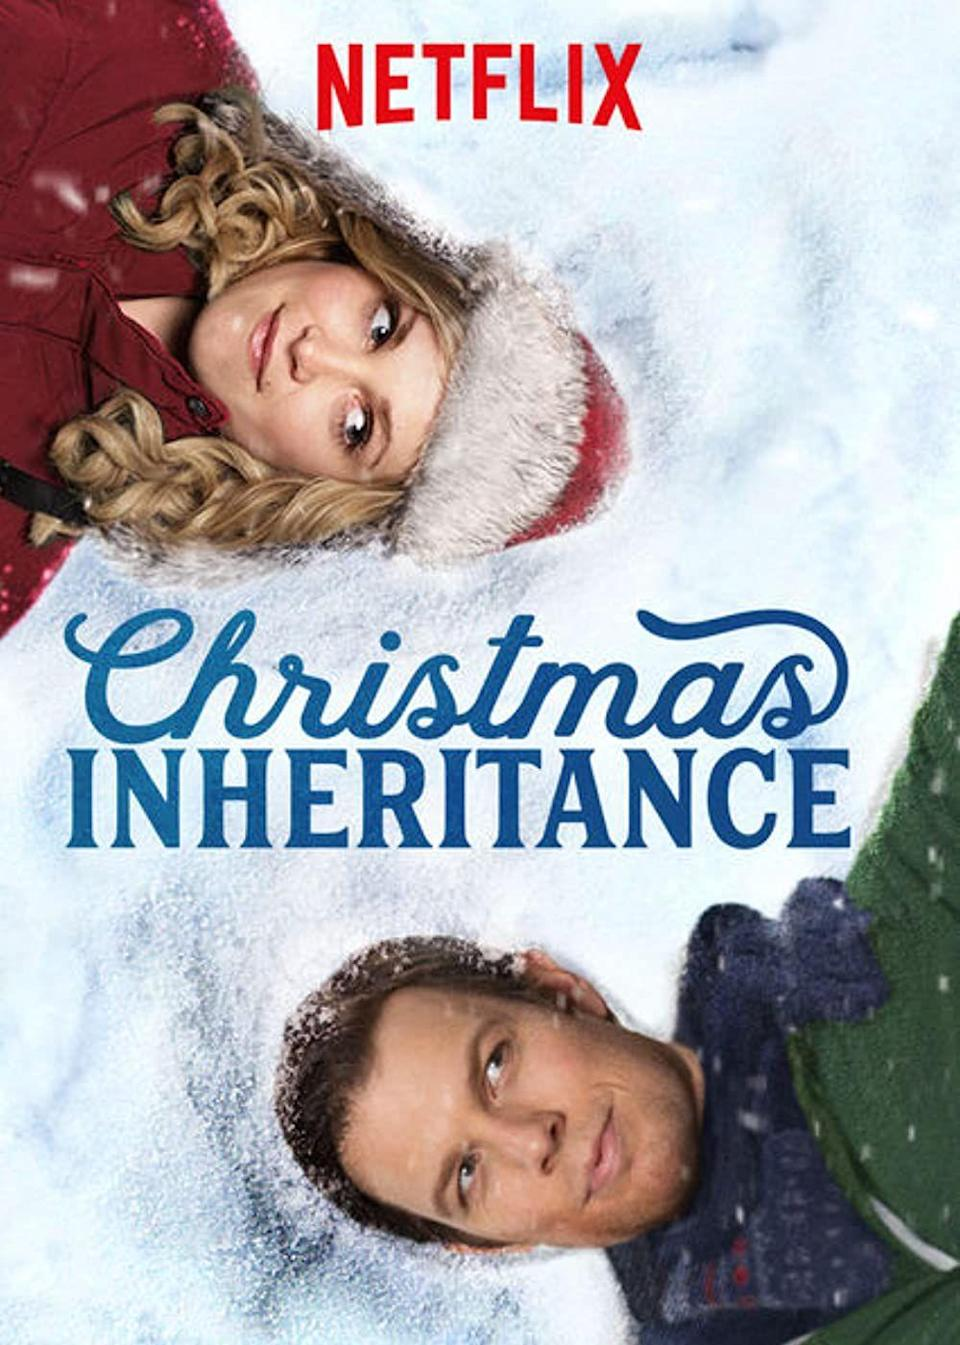 """<p>So cheesy, yet so <em>so</em> good. In order to prove to her father that she's capable of running the family's toy business, spoiled heiress Ellie pays a visit to Snow Falls (where the company started) to learn the true meaning of Christmas. Along the way, she just so happens to meet a handsome hunk, and, well, you can probably guess what happens next...</p><p><a class=""""link rapid-noclick-resp"""" href=""""https://www.netflix.com/watch/80177441"""" rel=""""nofollow noopener"""" target=""""_blank"""" data-ylk=""""slk:Watch Now"""">Watch Now</a></p>"""